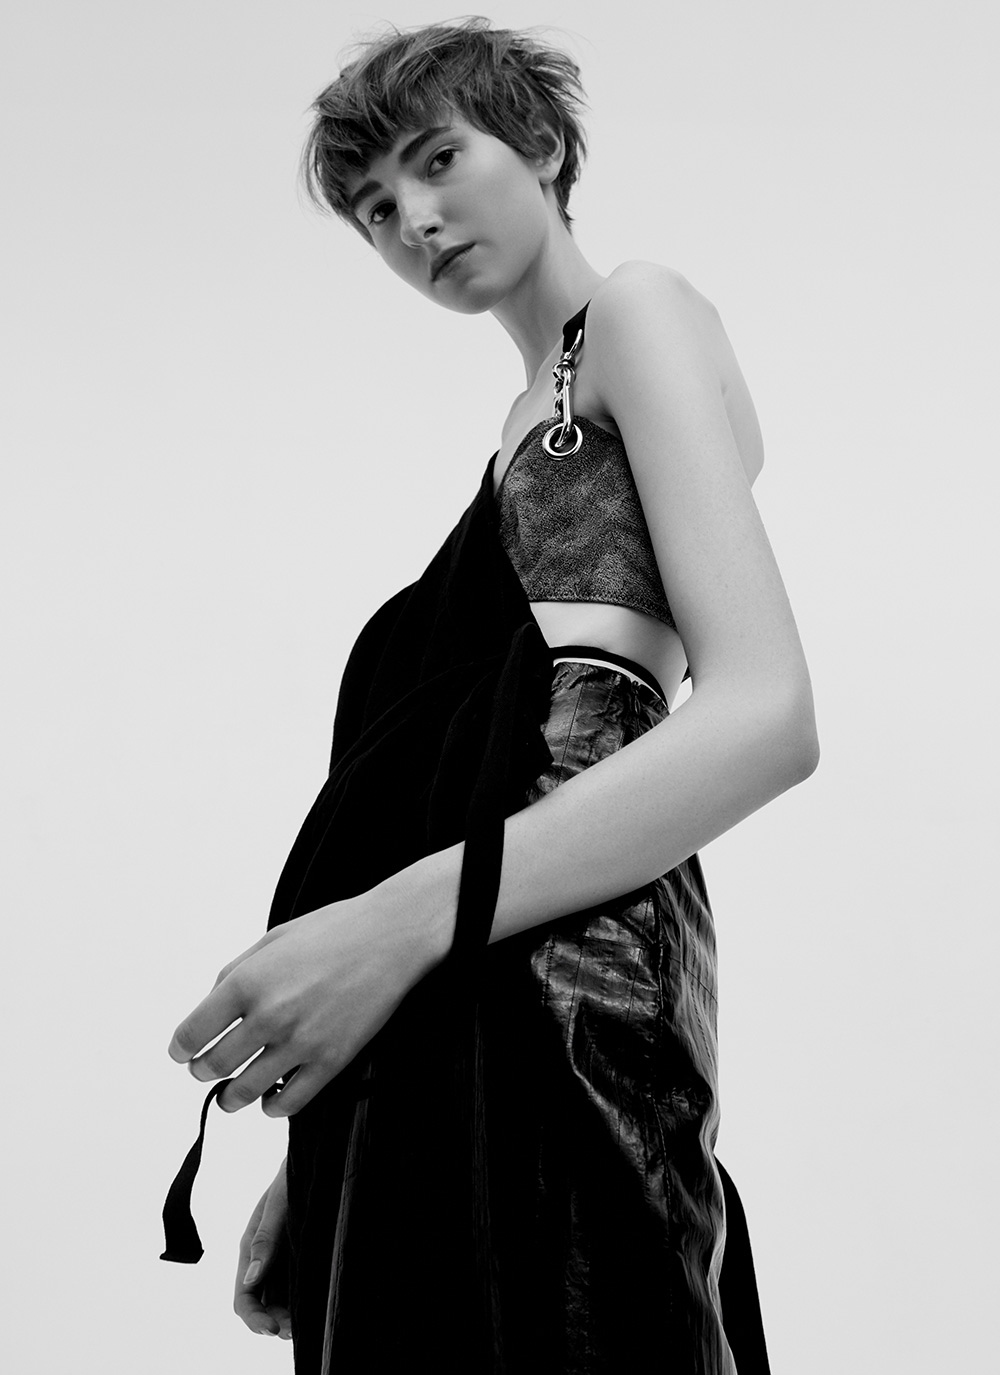 Black and white image by Ricardo Beas of model Mary Tish for MONROWE Magazine